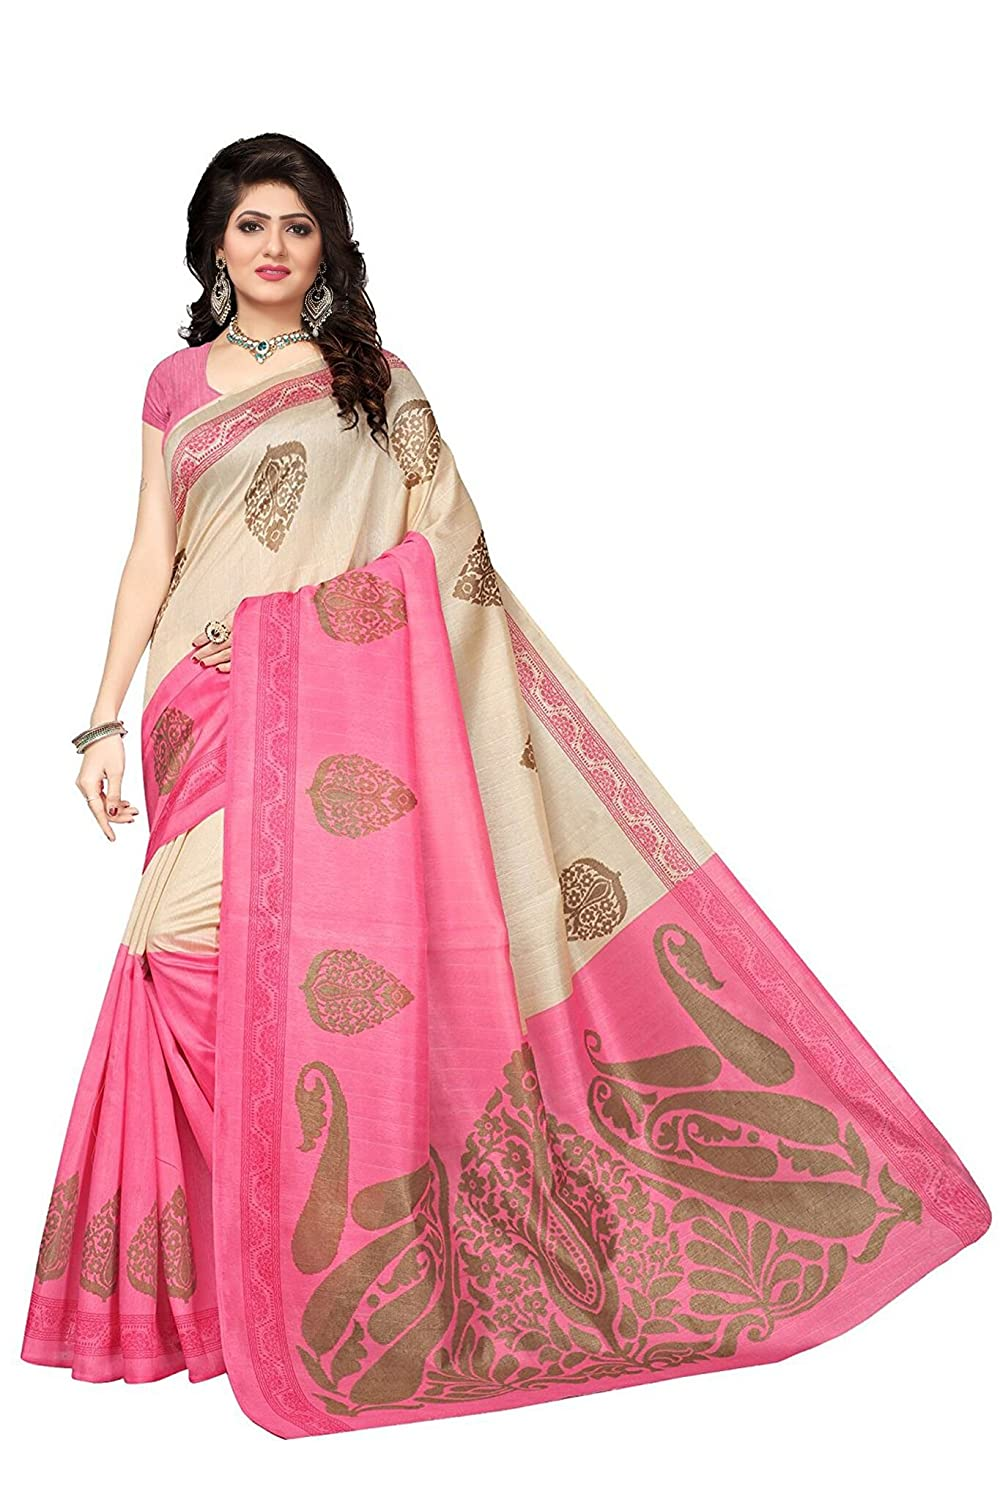 Shonaya Women`S Pink Colour Bhaglpuri Silk Printed Saree with Unstitched Blouse Piece DULHANIYA-PINK